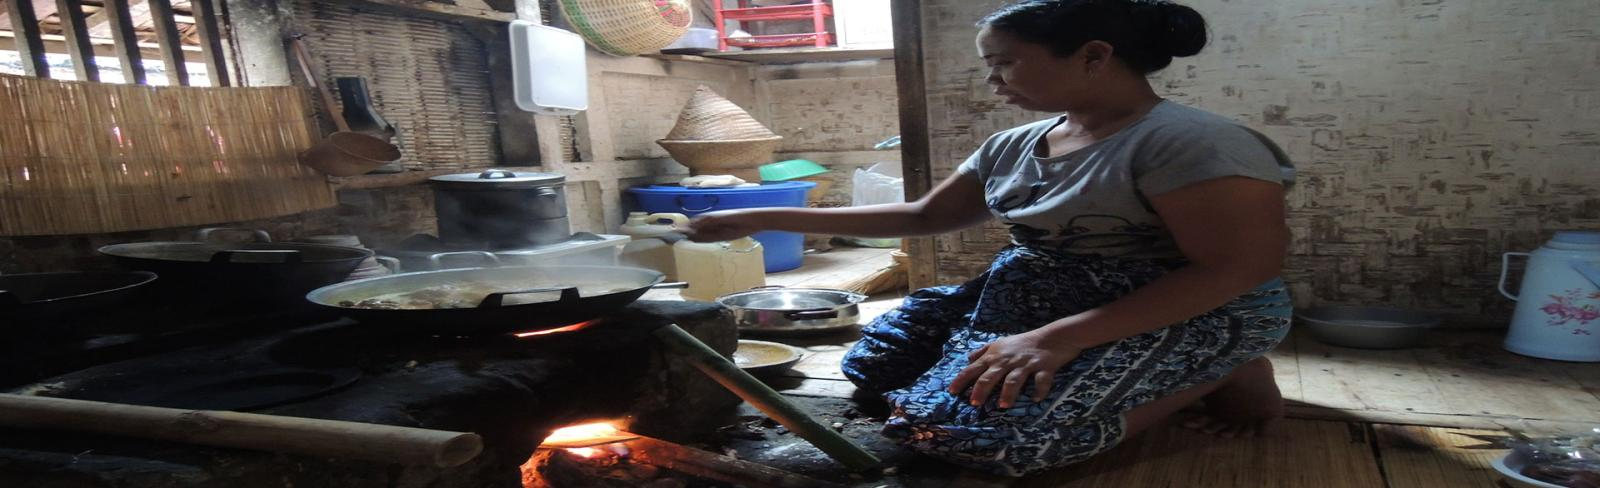 Indonesia Clean Cooking: ESMAP Supports Innovative Approaches to Build the Local Cookstoves Market, Helps Increase Access